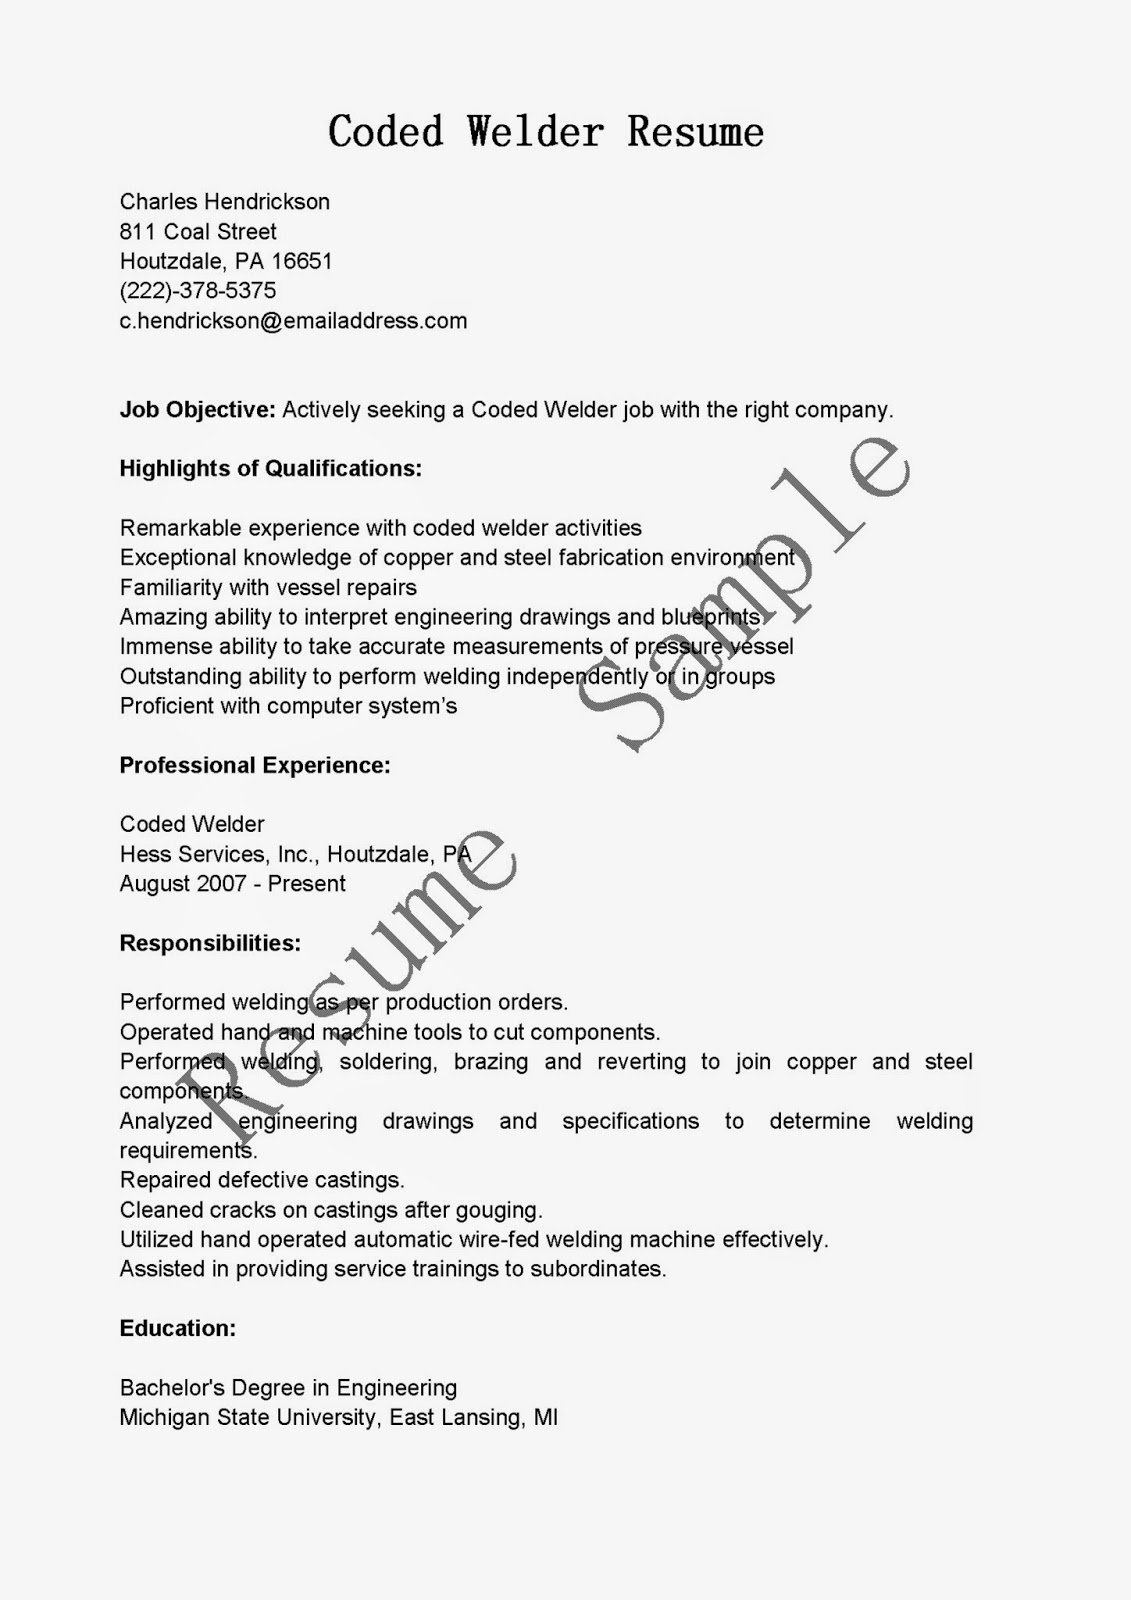 Resume For Welder Job Contoh Cv Welder Contoh Sur